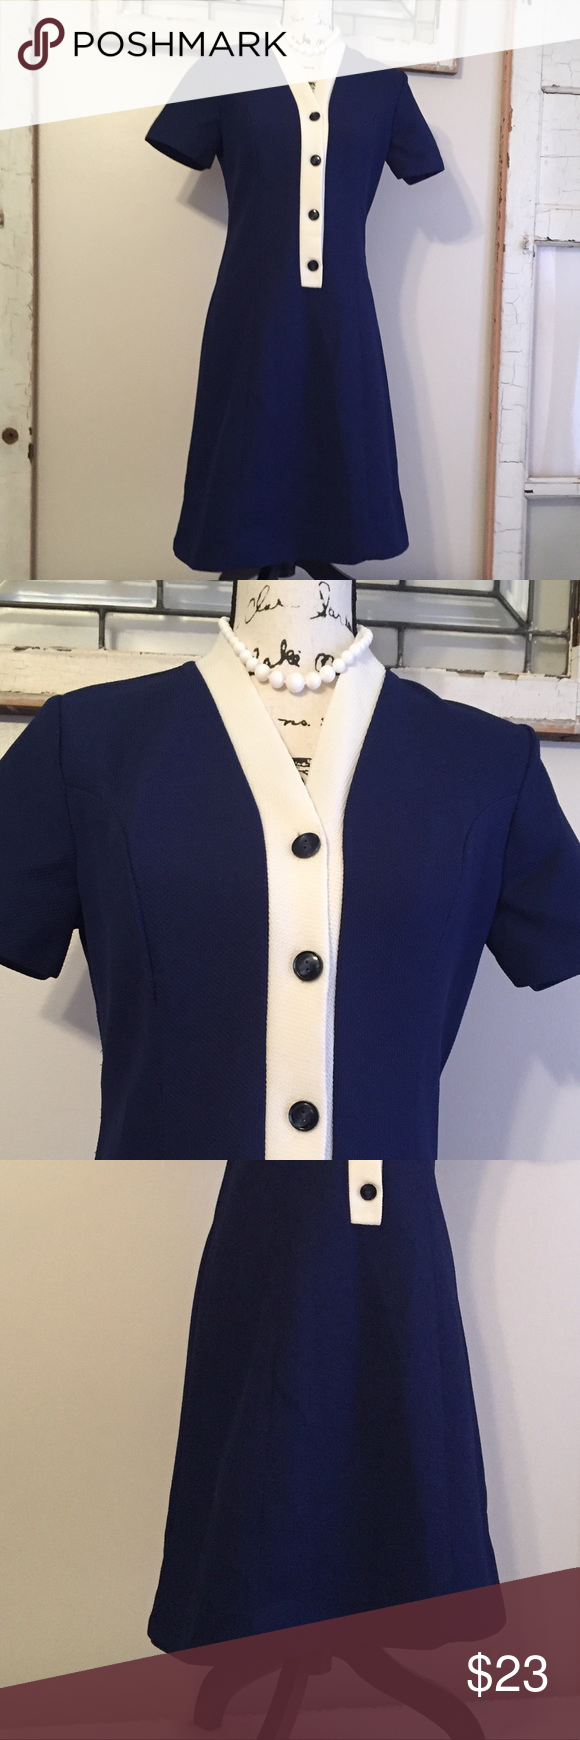 239a4c12a Vintage 60s Navy Dress Flattering navy dress from the 1960s. Navy blue with  white trim